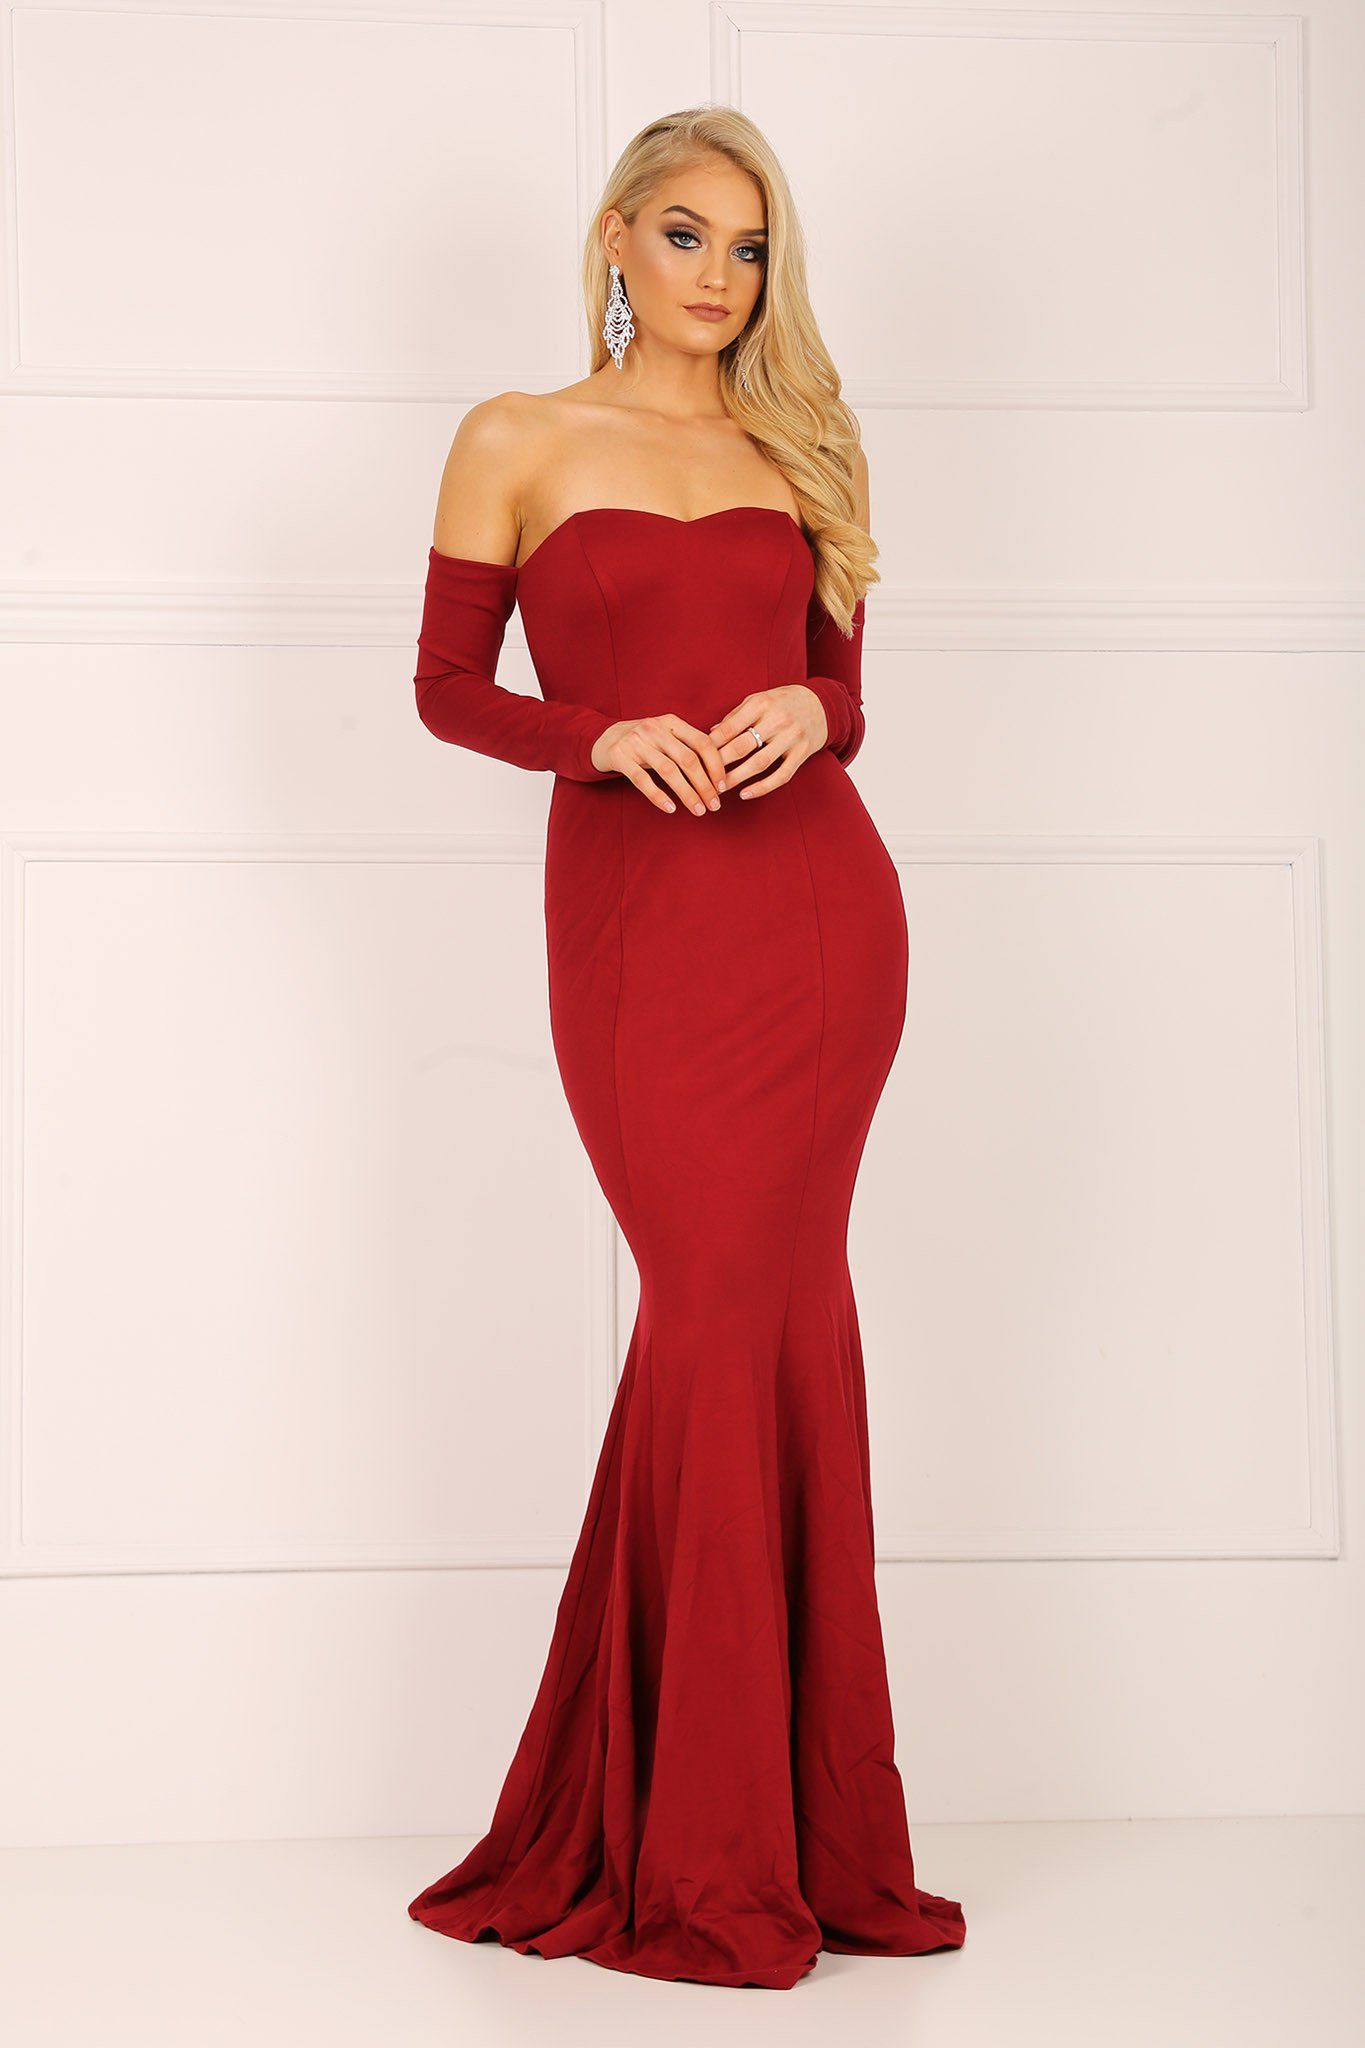 Wine red long sleeve off the shoulder form fitted mermaid gown